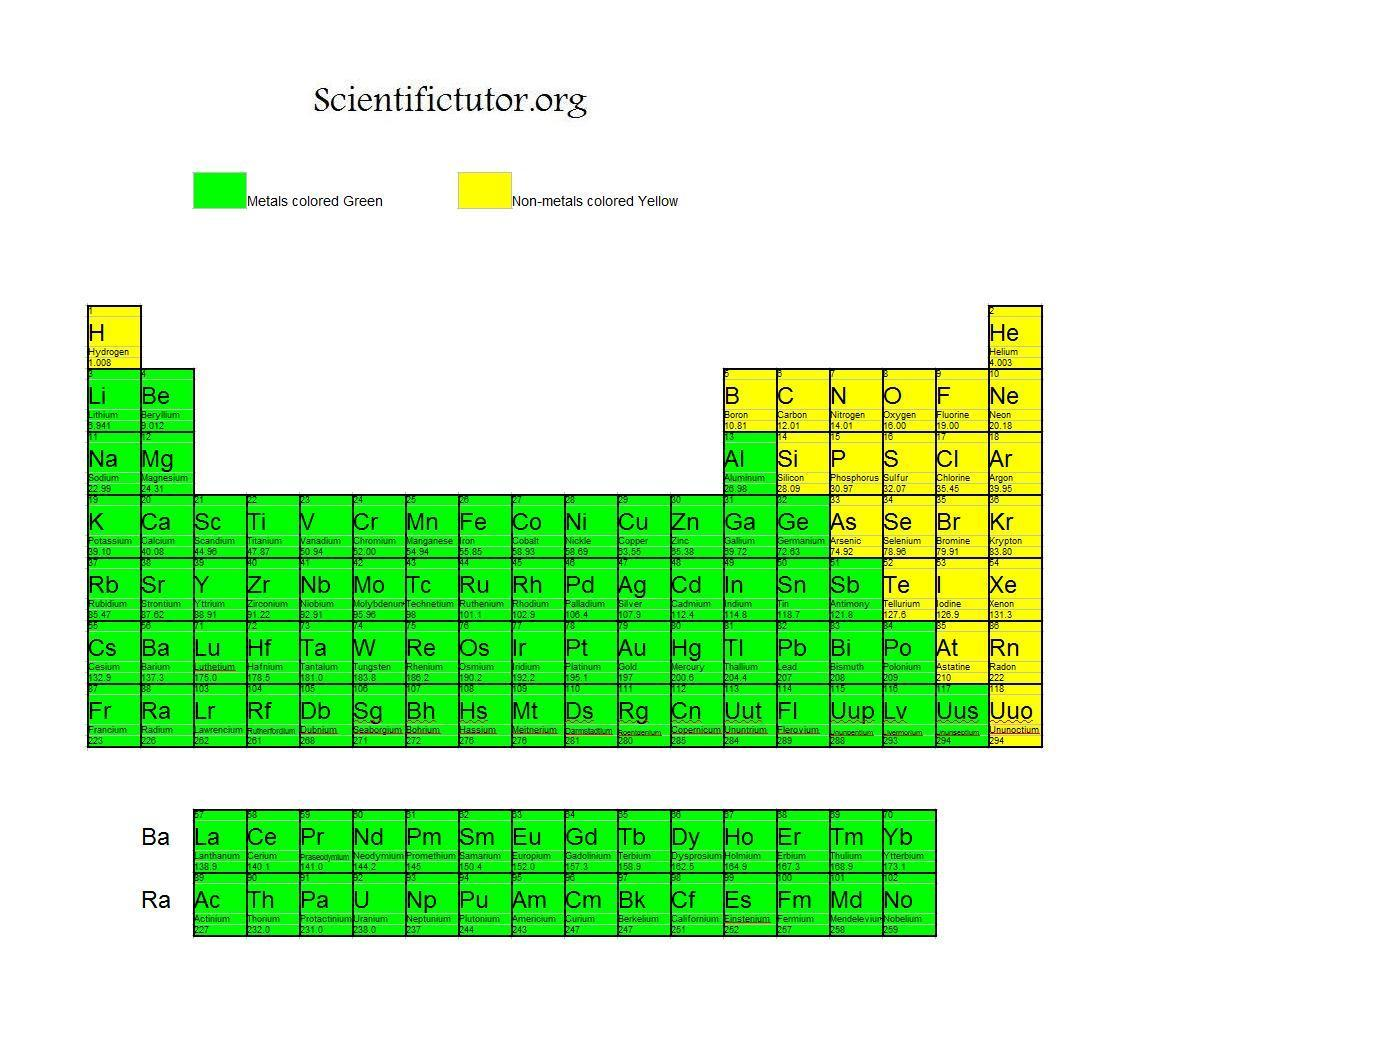 Chem metals and non metals scientific tutor for an example of a periodic table that shows this click here gamestrikefo Gallery